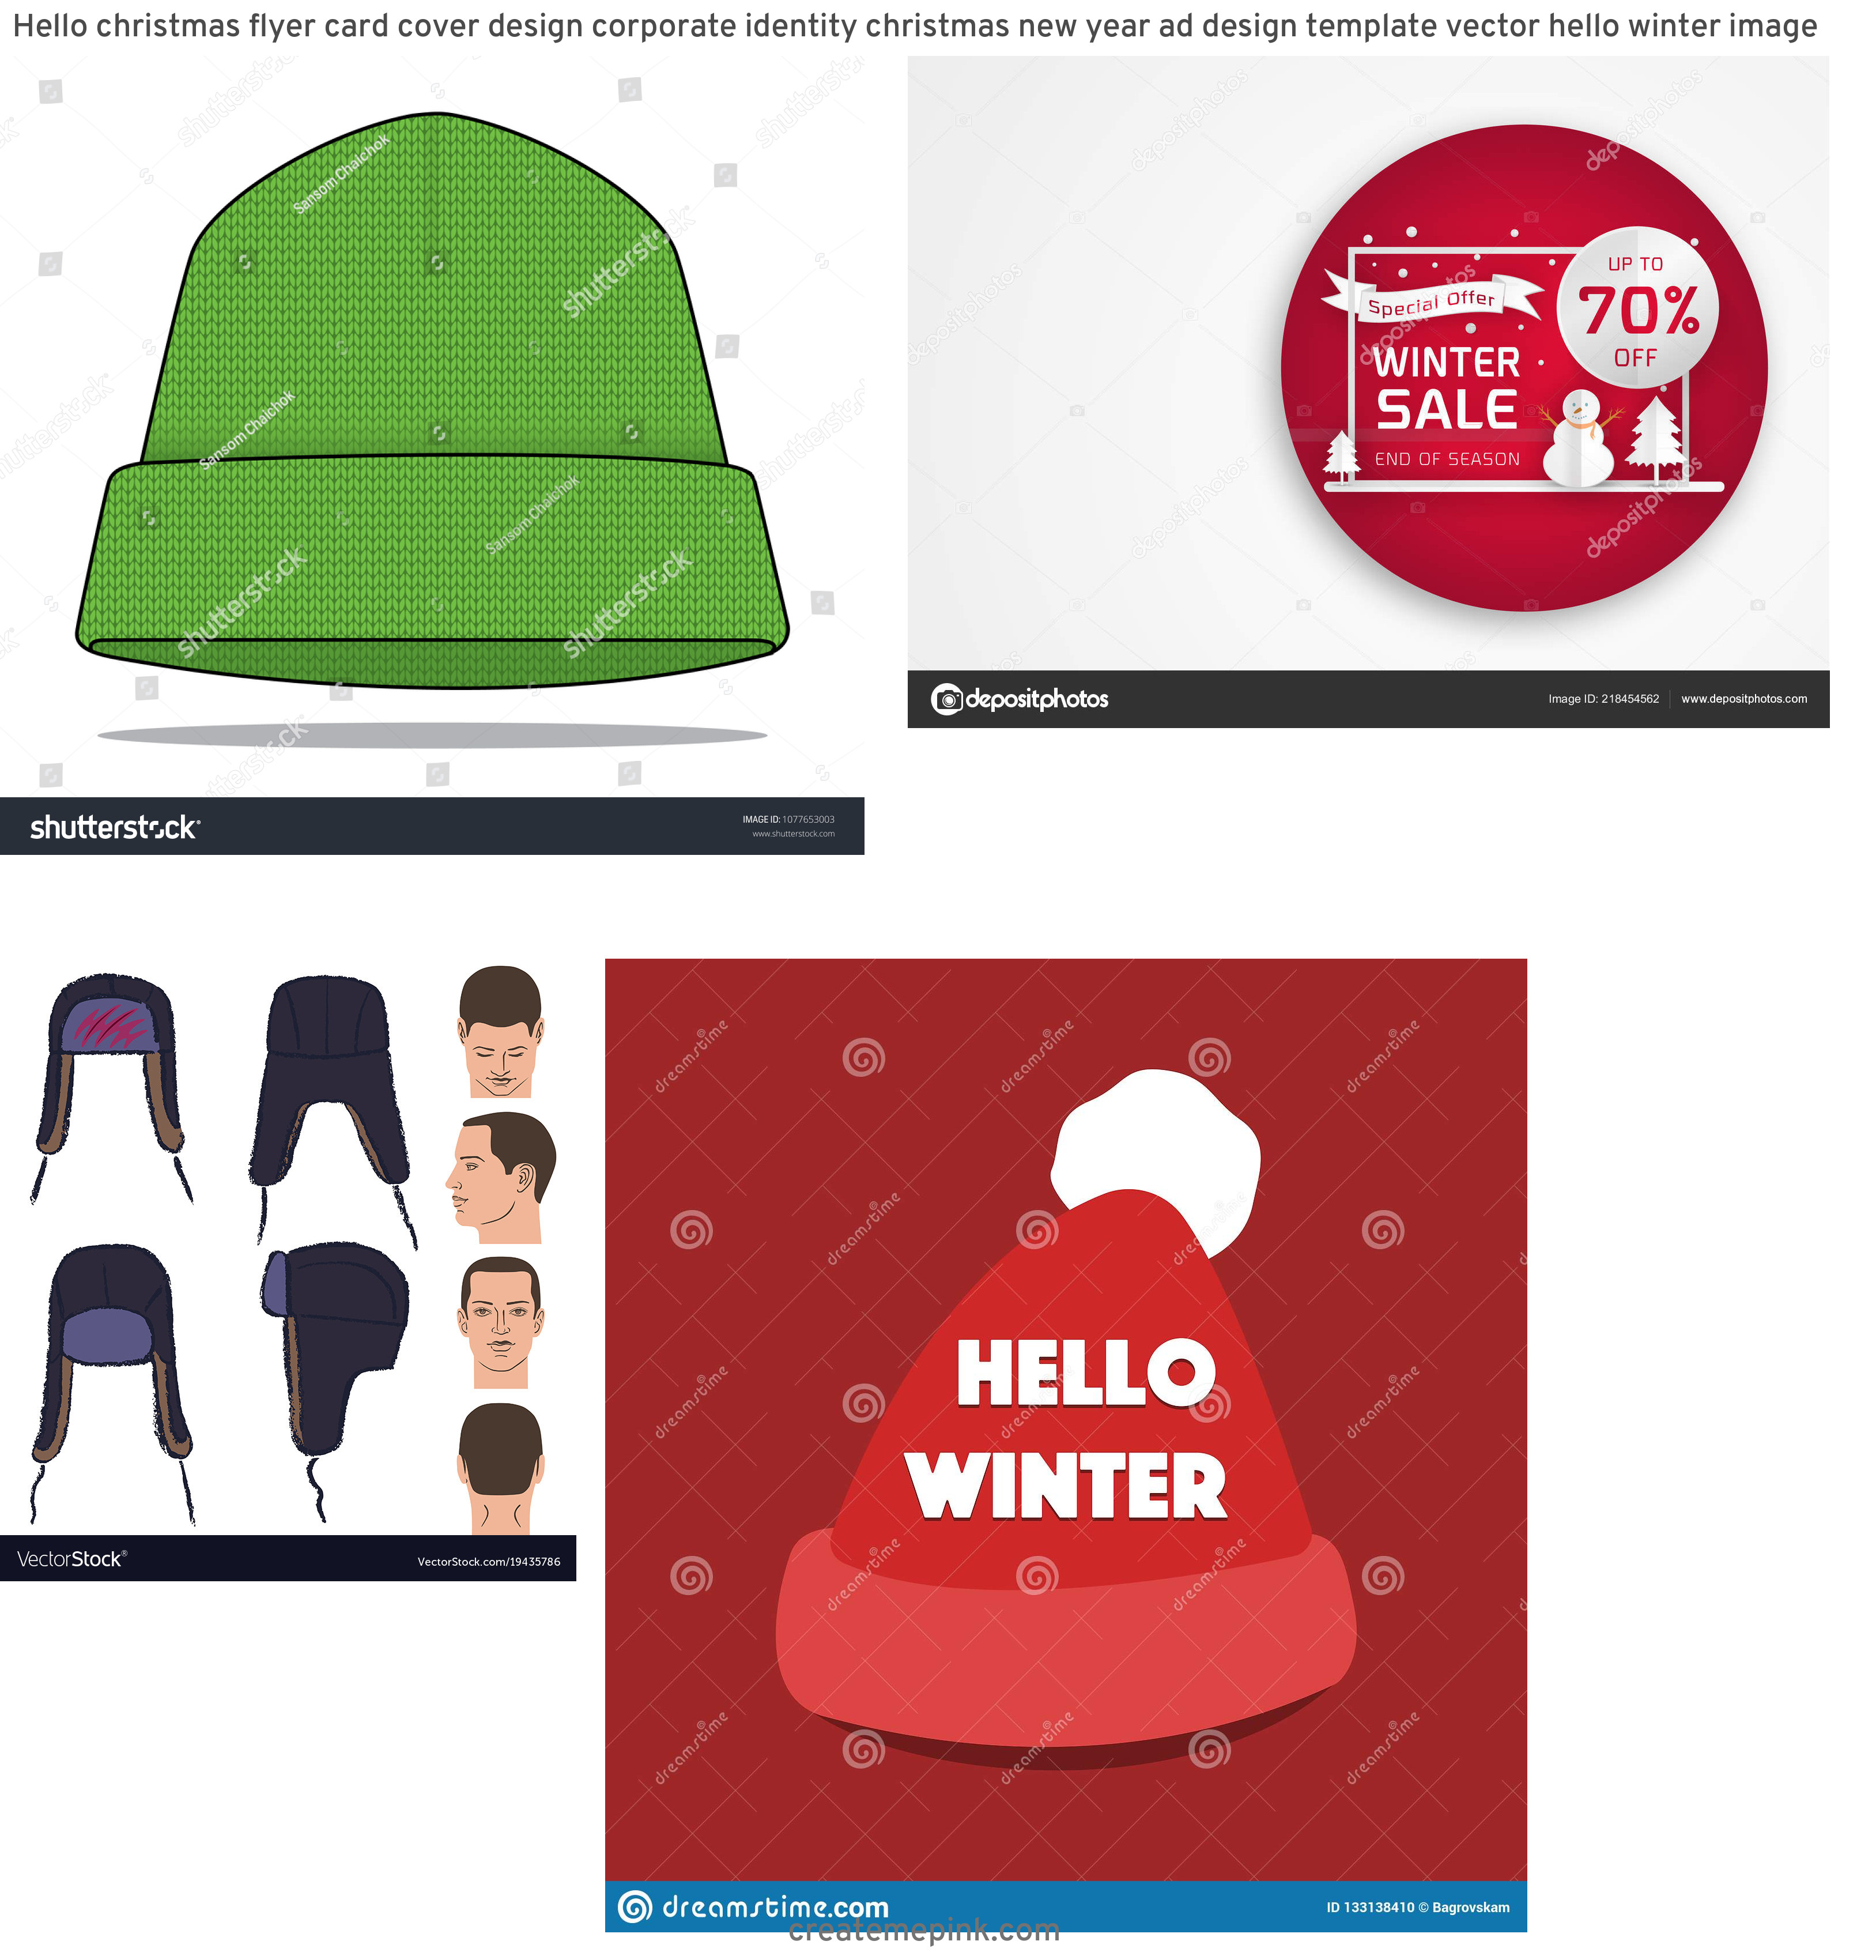 Winter Hat Vectors Templates: Hello Christmas Flyer Card Cover Design Corporate Identity Christmas New Year Ad Design Template Vector Hello Winter Image